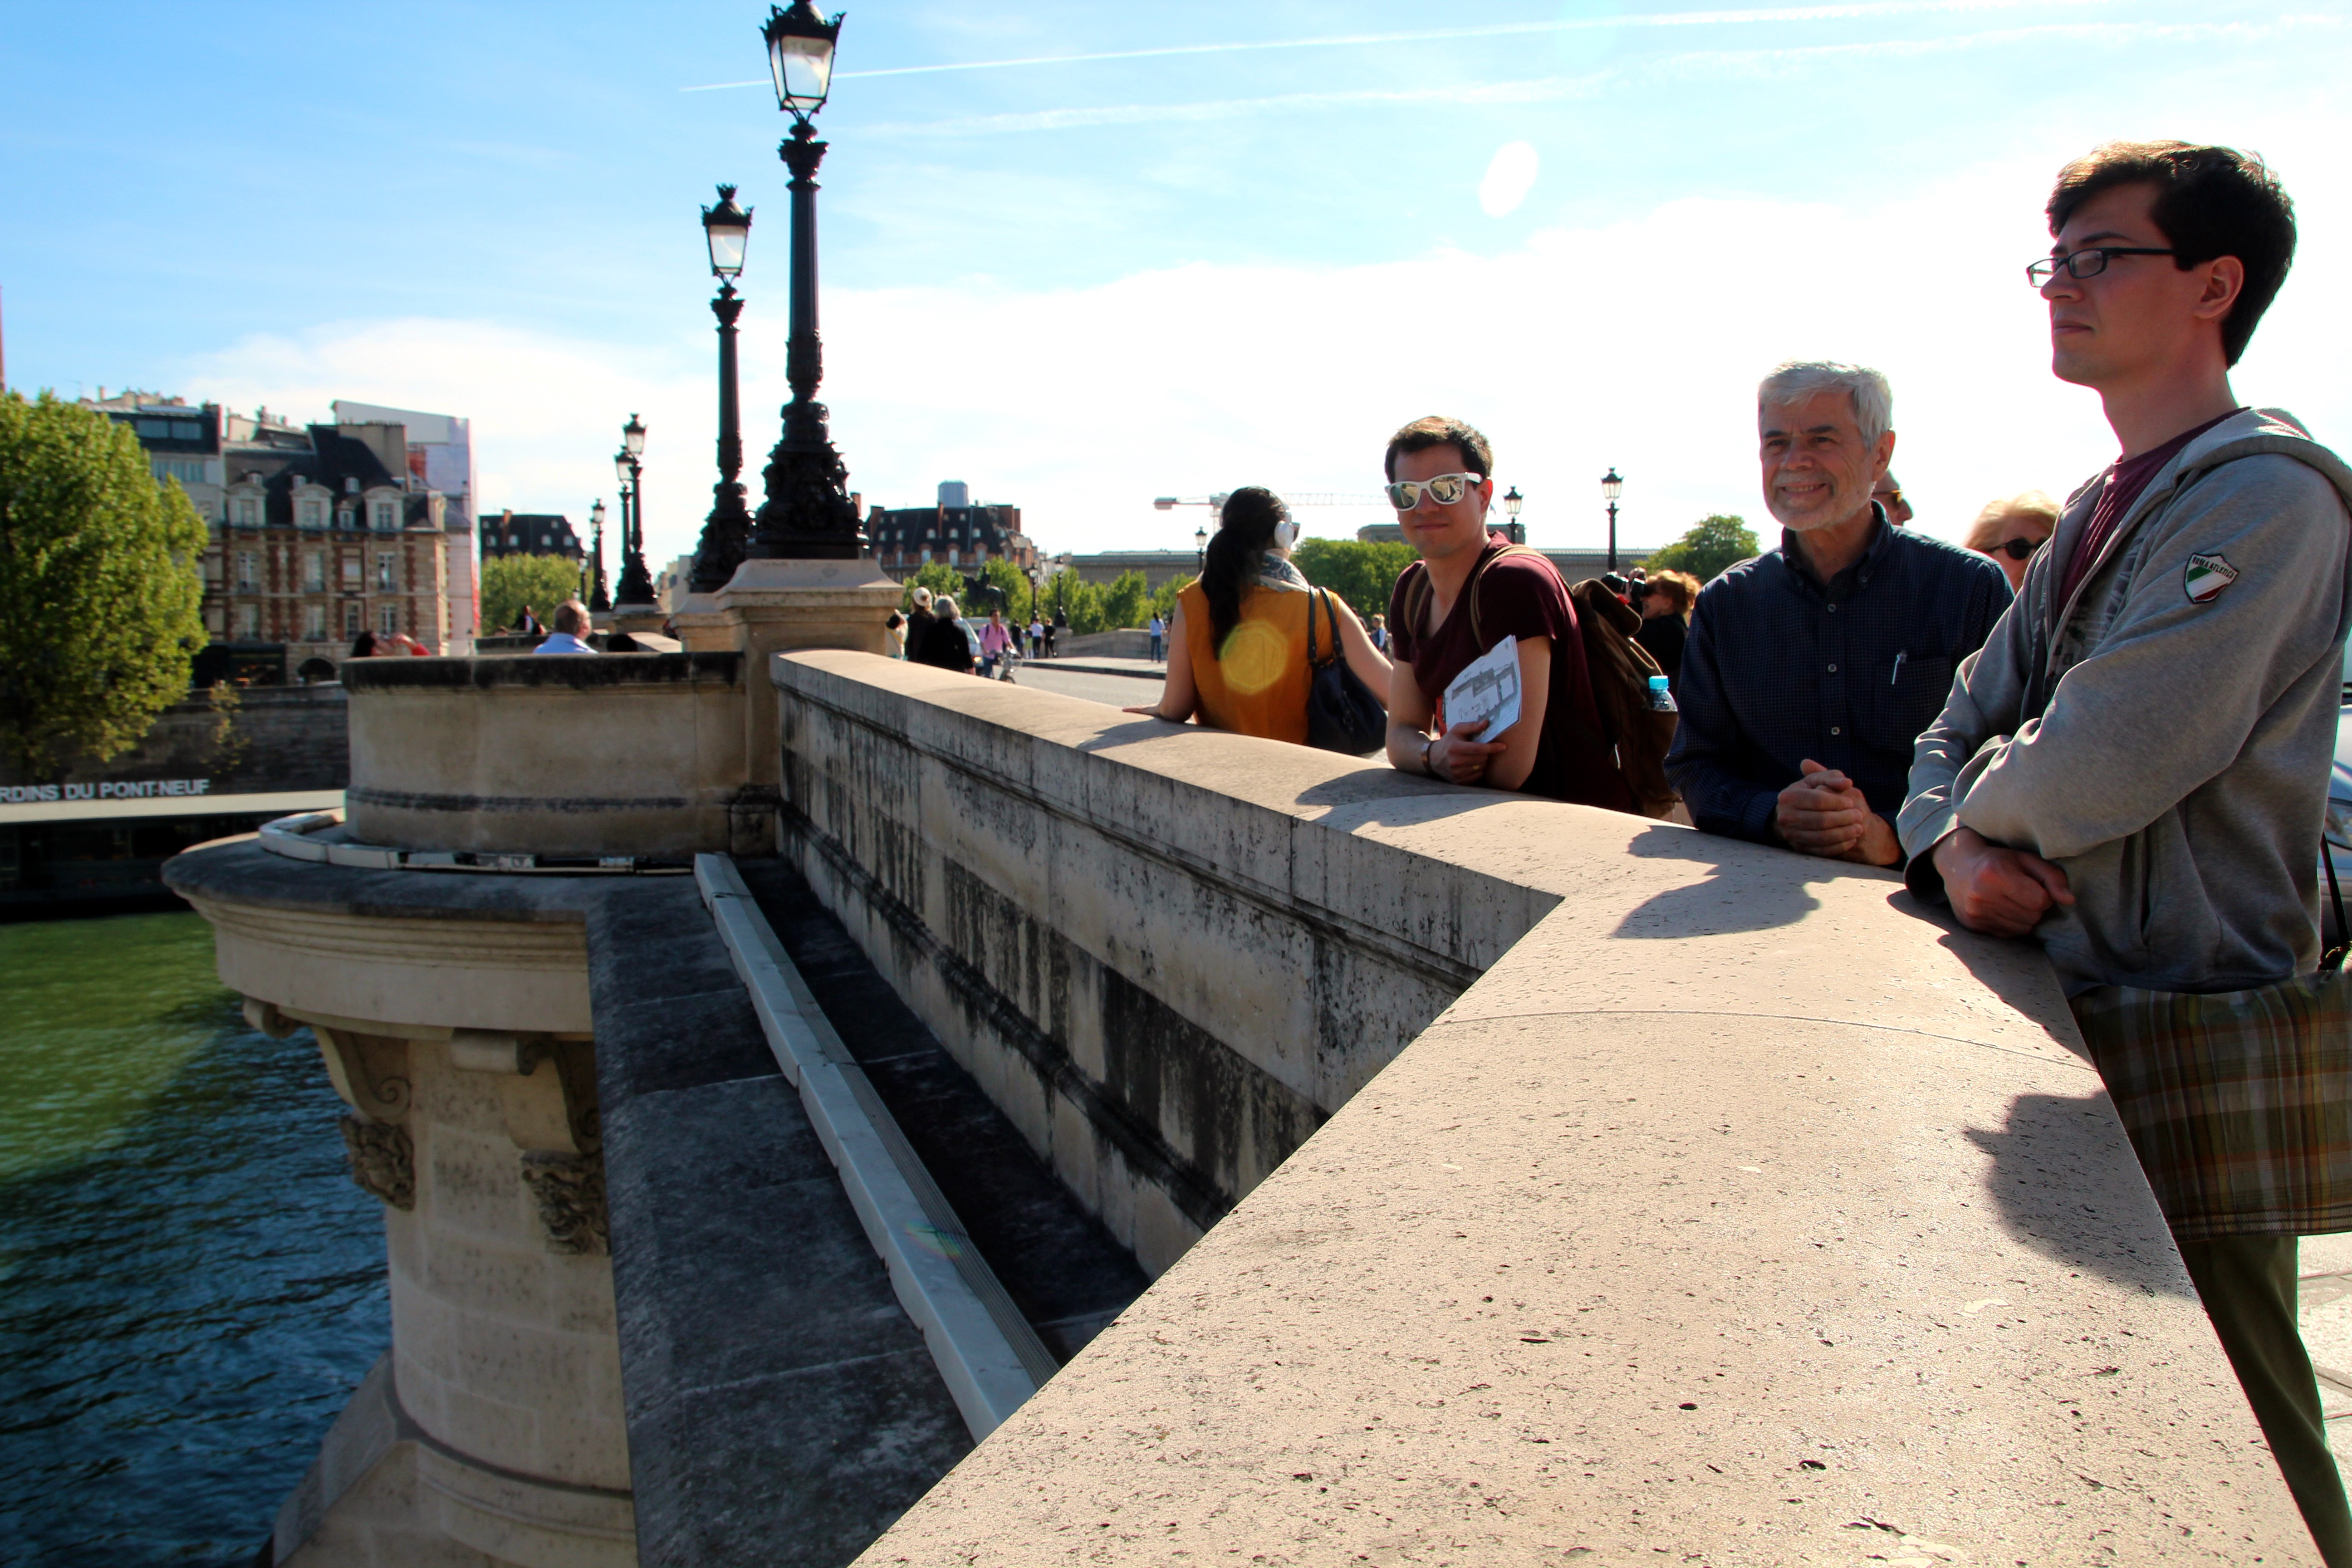 Standing on Bridge overlooking The Seine River